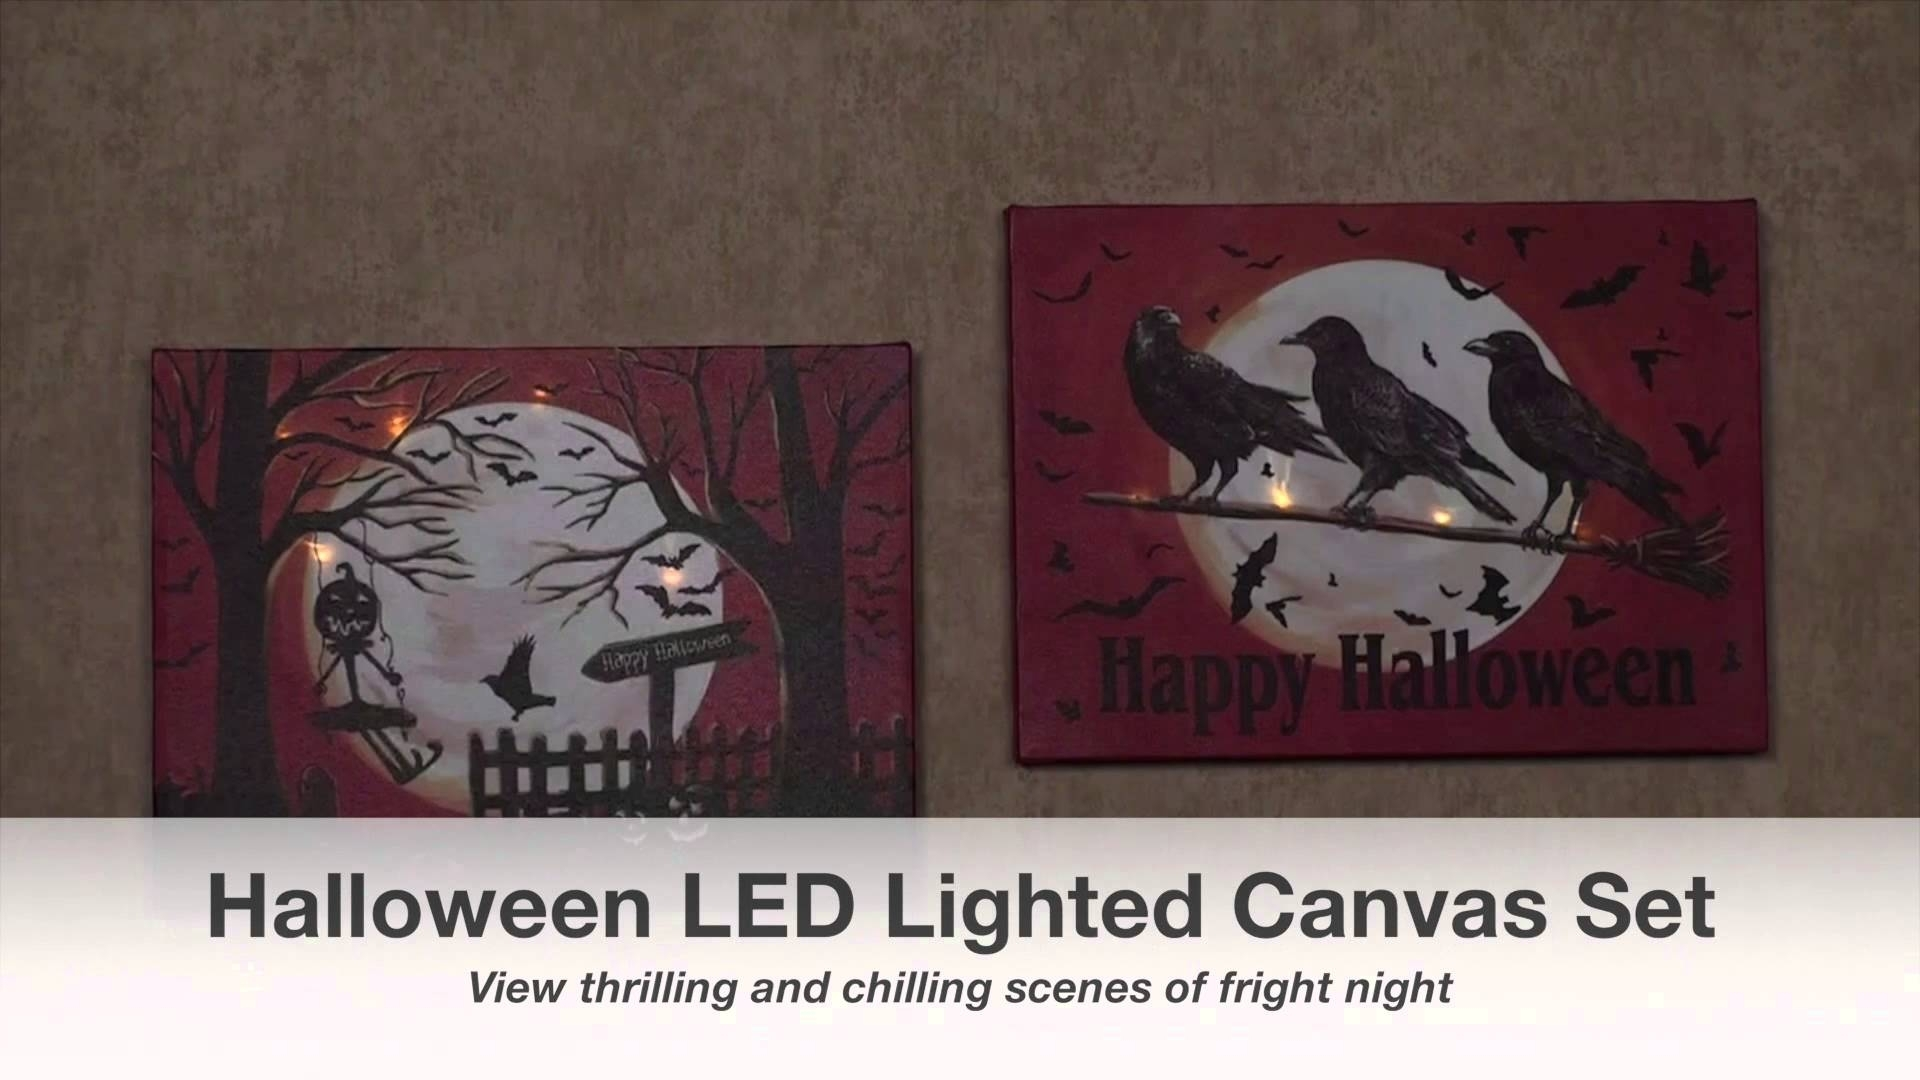 Halloween Night Led Lighted Canvas Wall Art Set – Youtube Intended For Most Current Halloween Led Canvas Wall Art (Gallery 5 of 15)